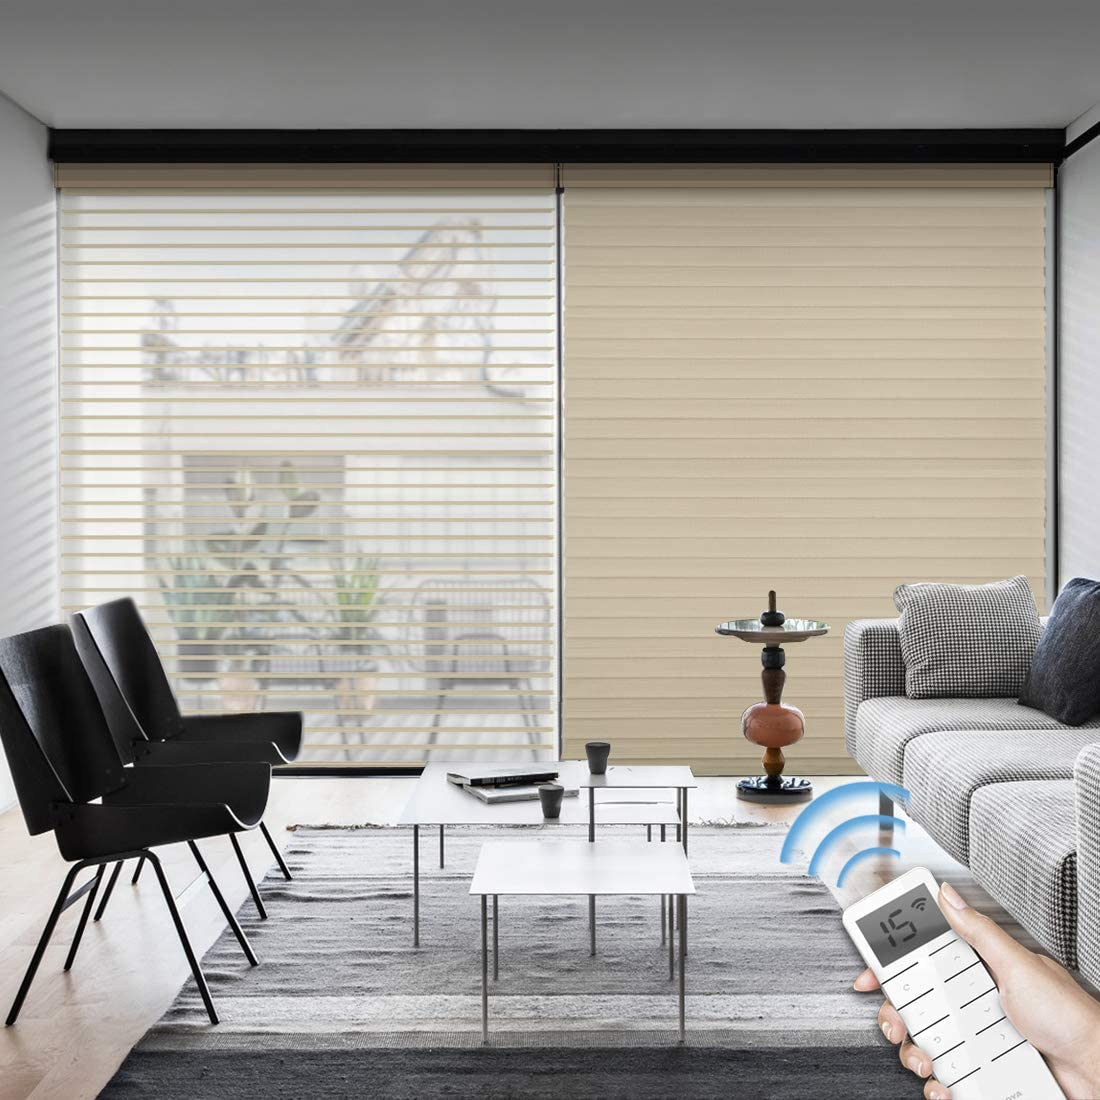 Graywind Motorized Light Filtering Cordless Shangrila Roller Blinds Remote Control Rechargeable Wireless Privacy Sheer Blind with Valance for Smart Home and Office, Customized Size (Coffee)